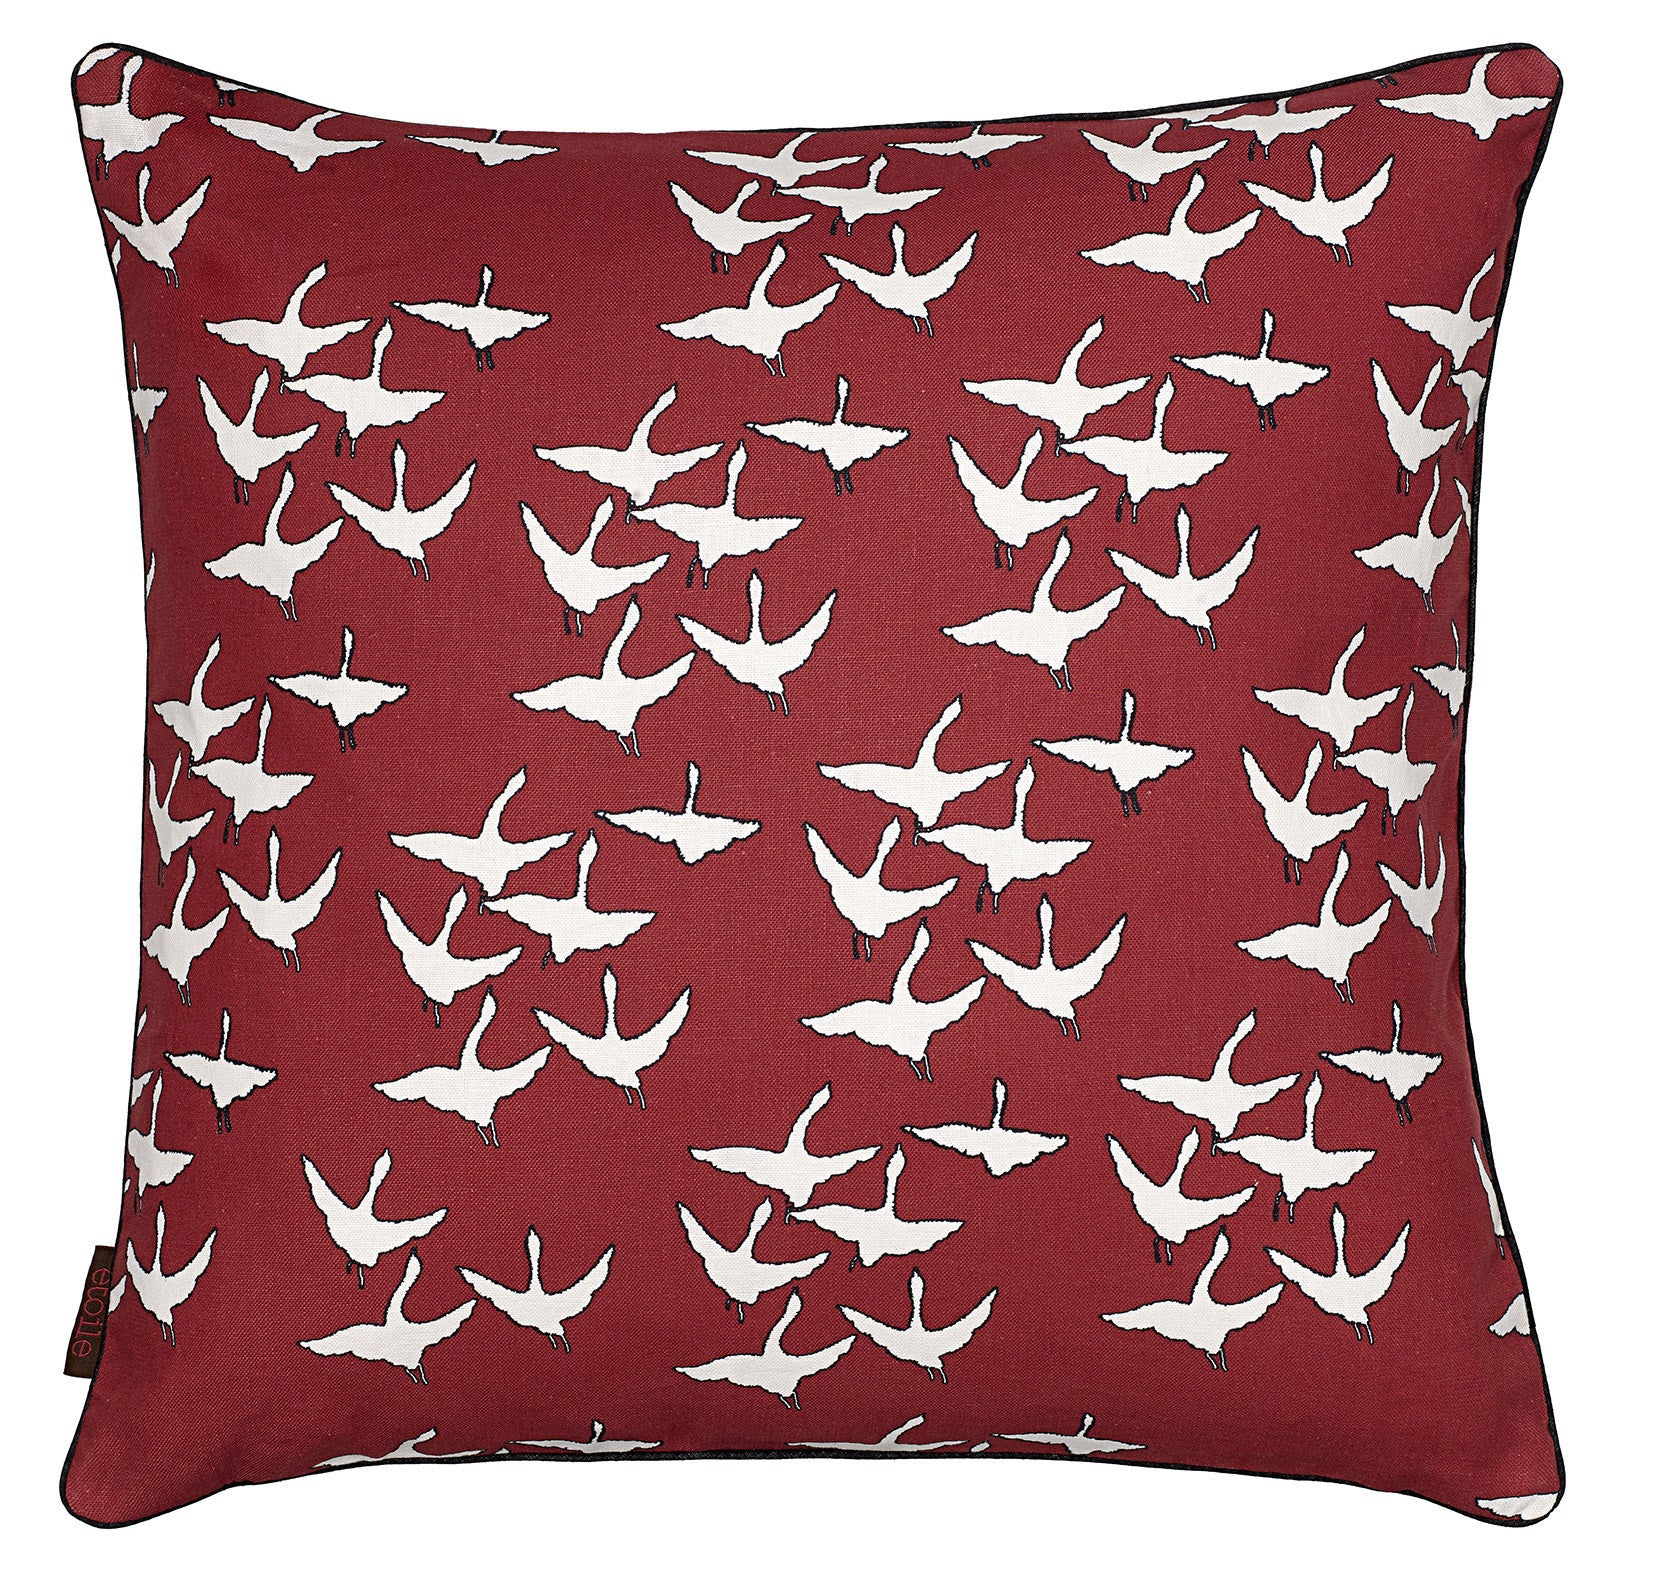 Geese Bird Pattern Cotton Linen Cushion in Dark Vermilion Red 45x45cm